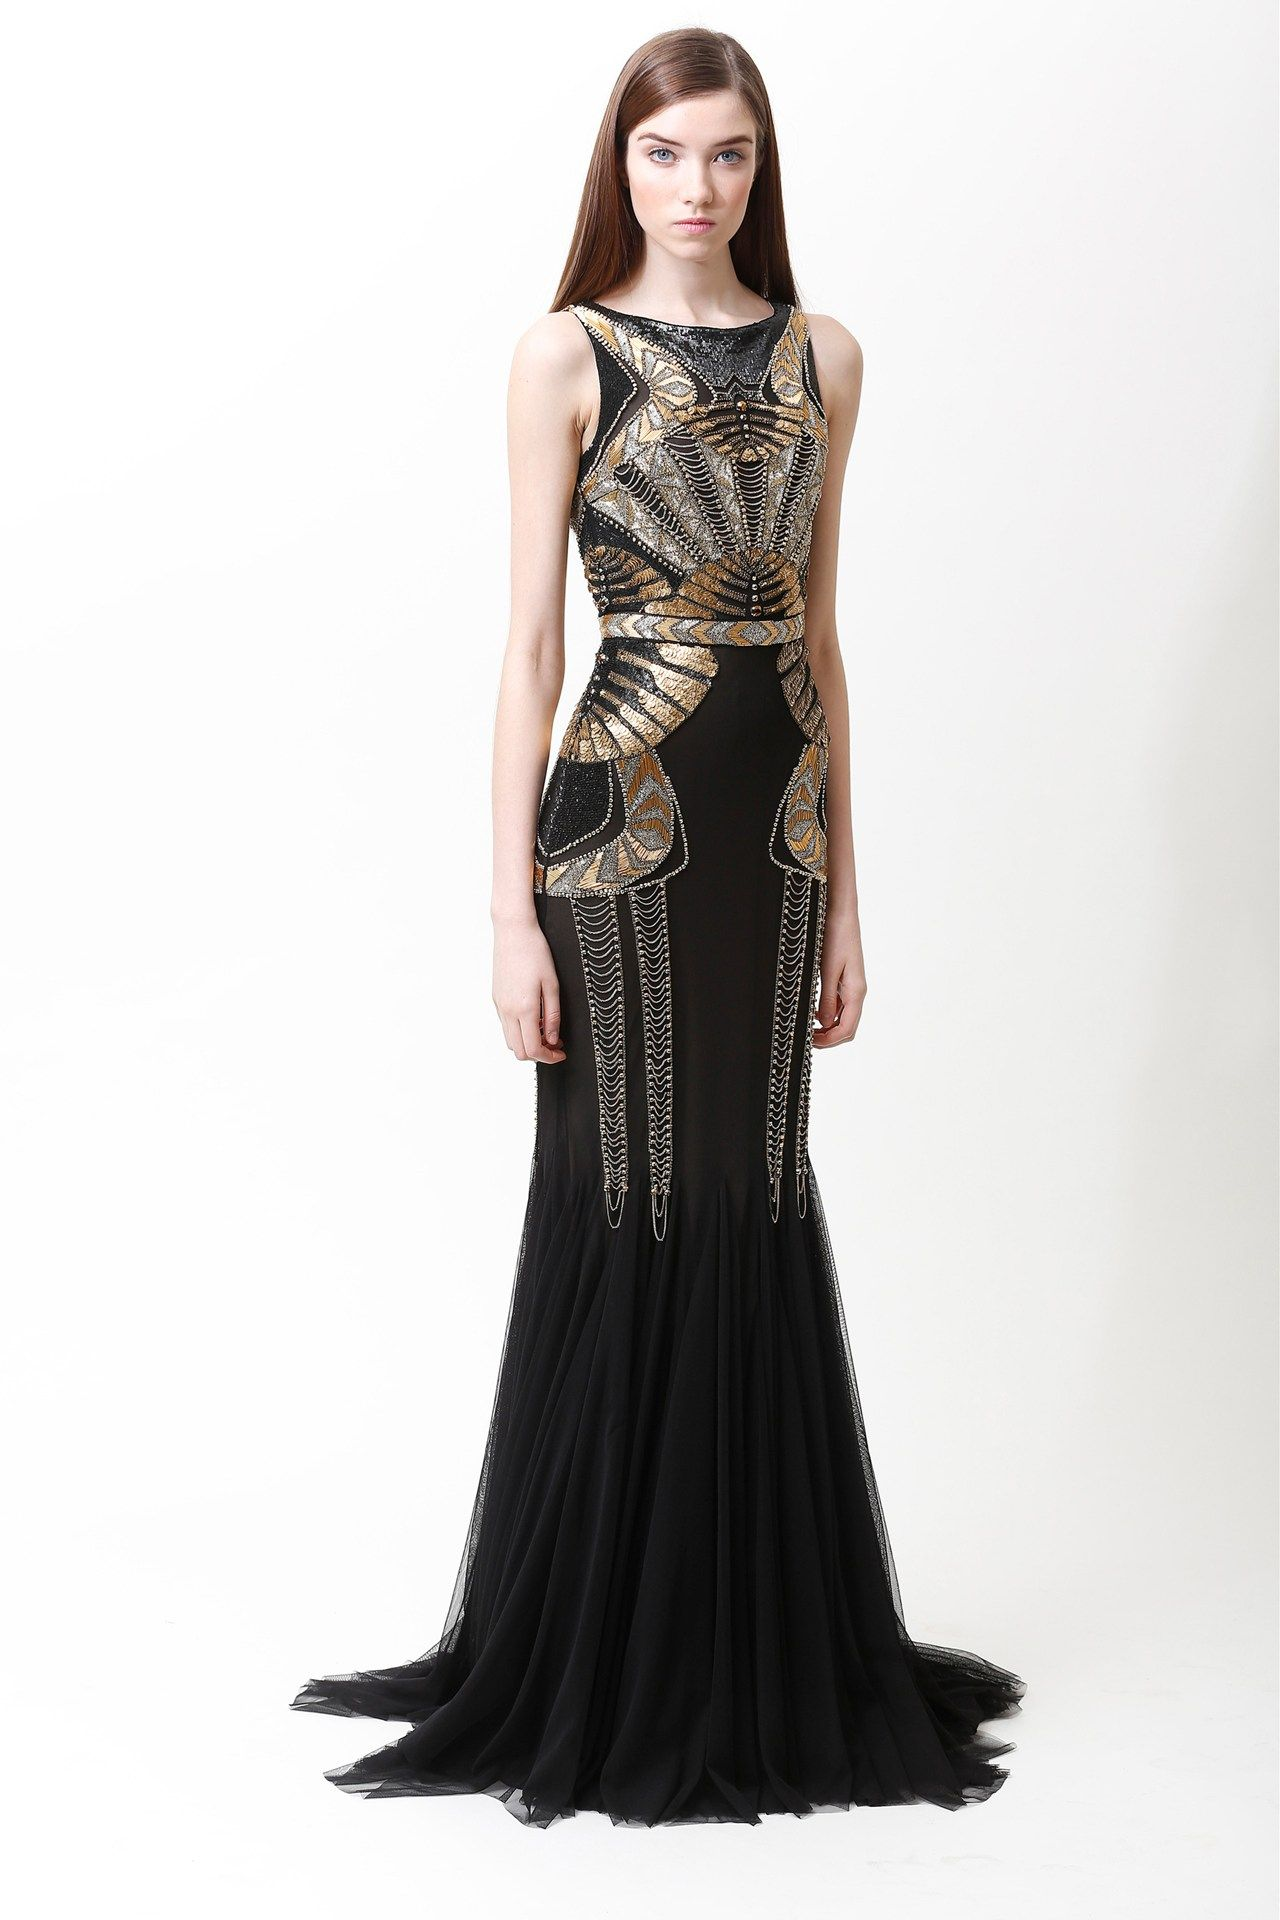 Badgley Mischka Art Deco inspired sequined black gown | prom ...